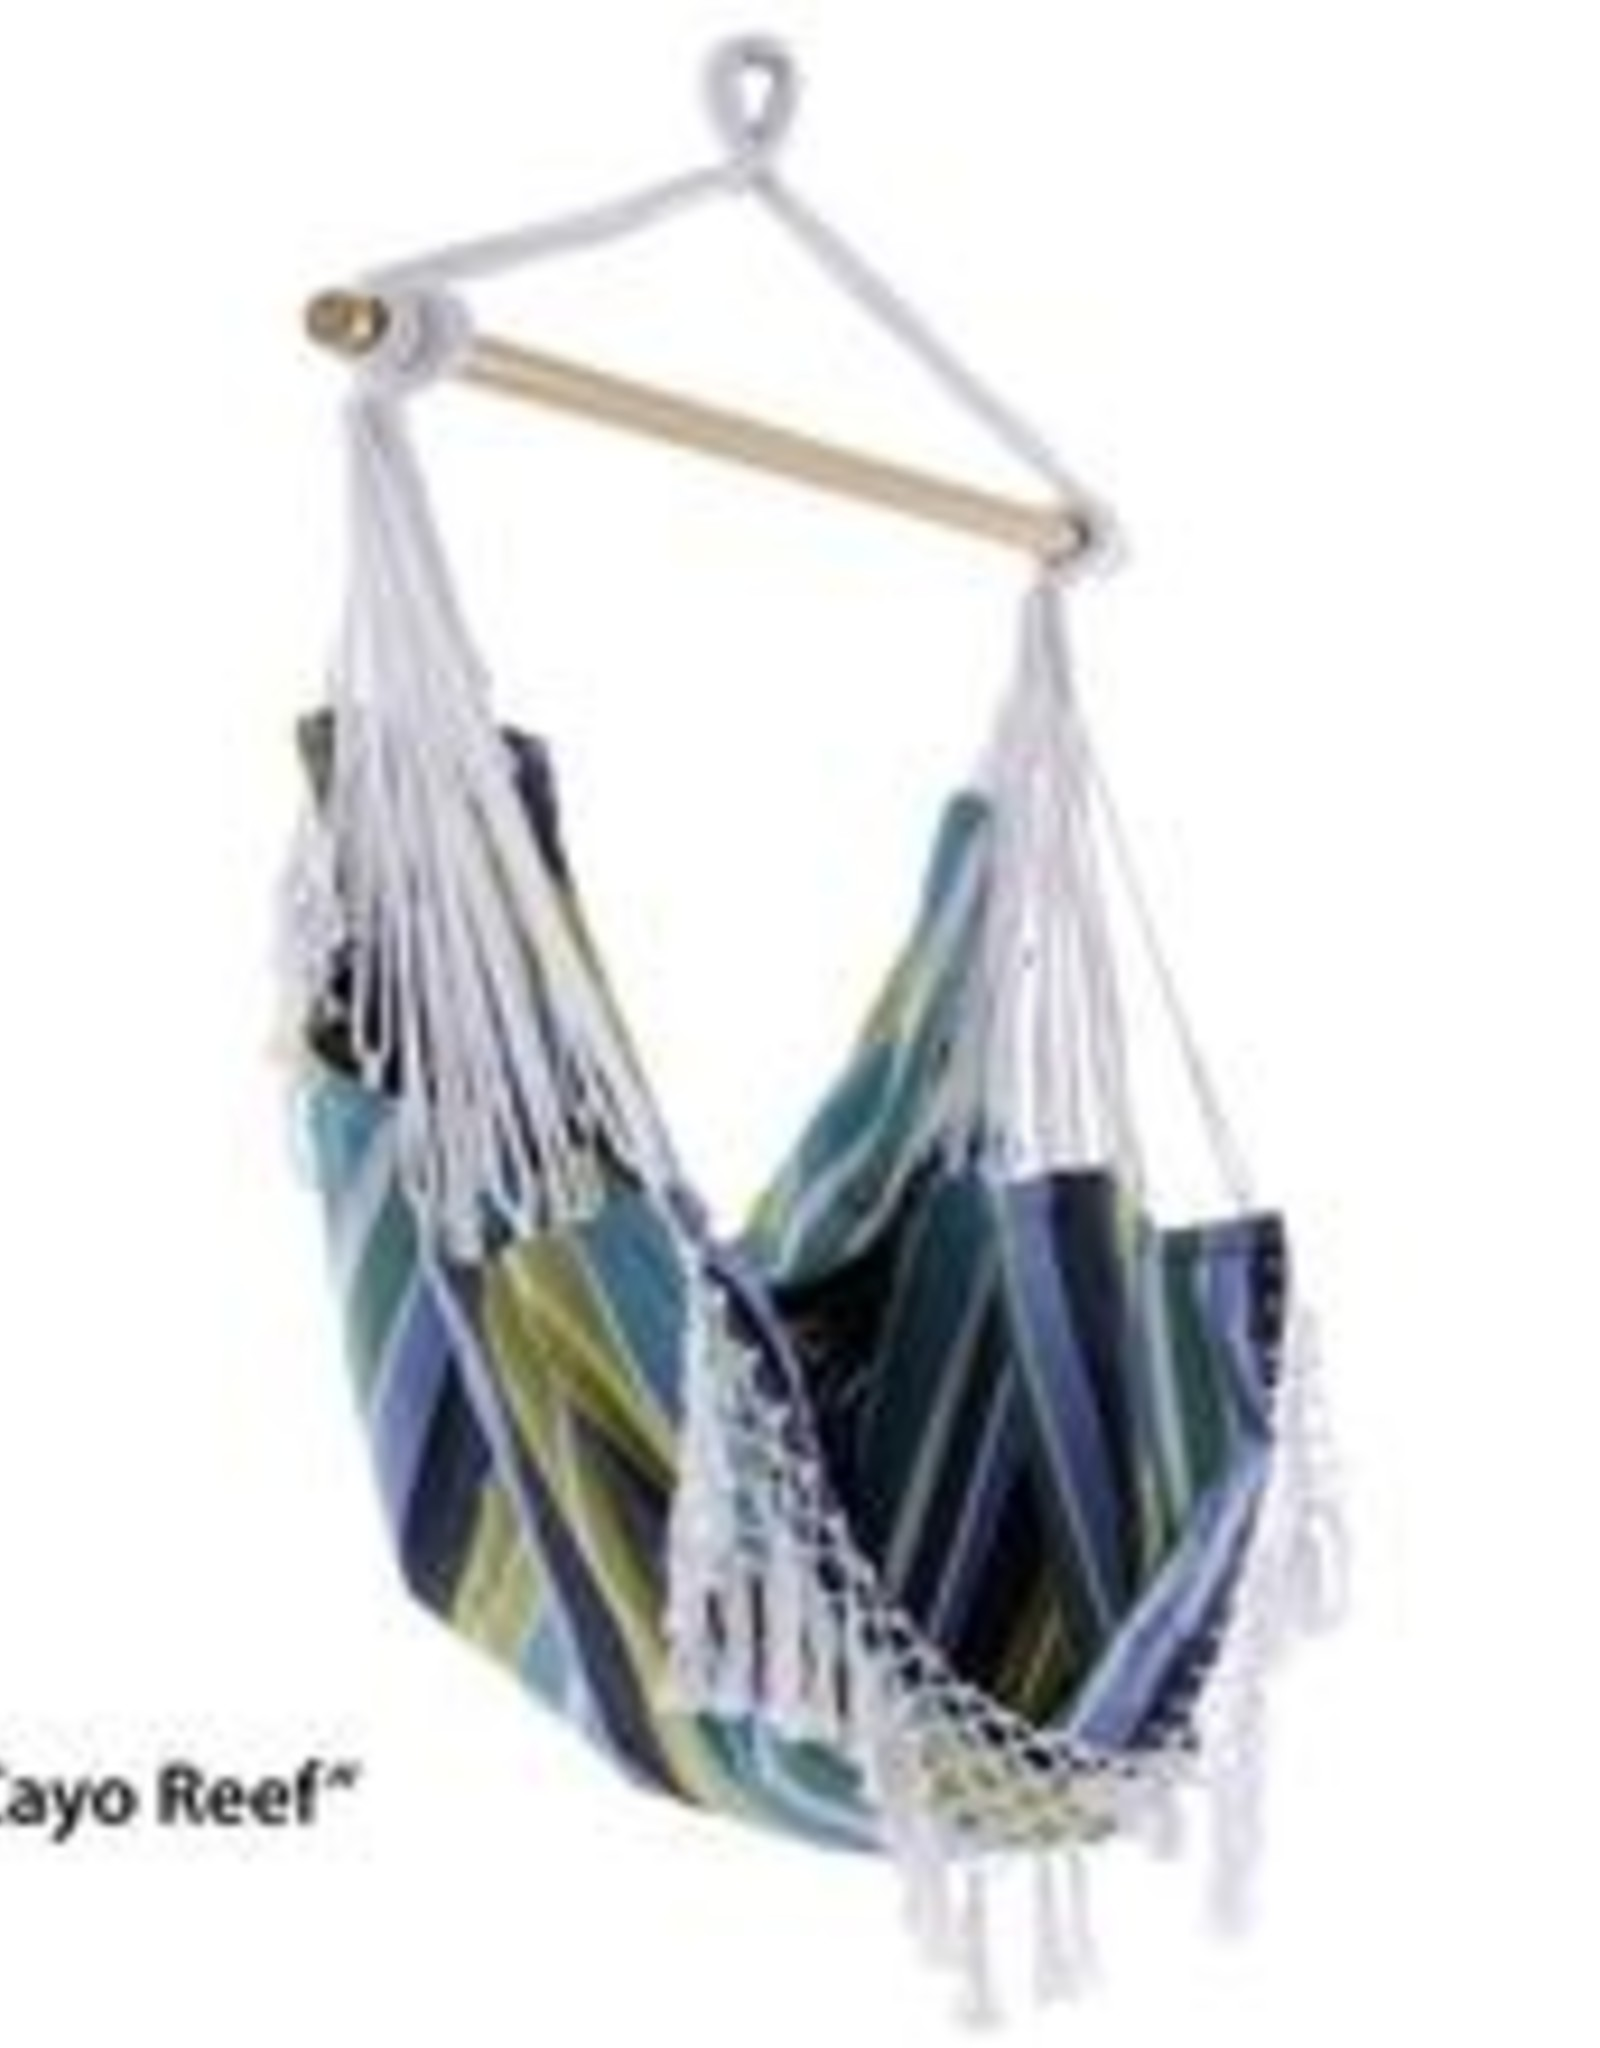 Hammock Vivere Brazilian Chair Cayo Reef 529